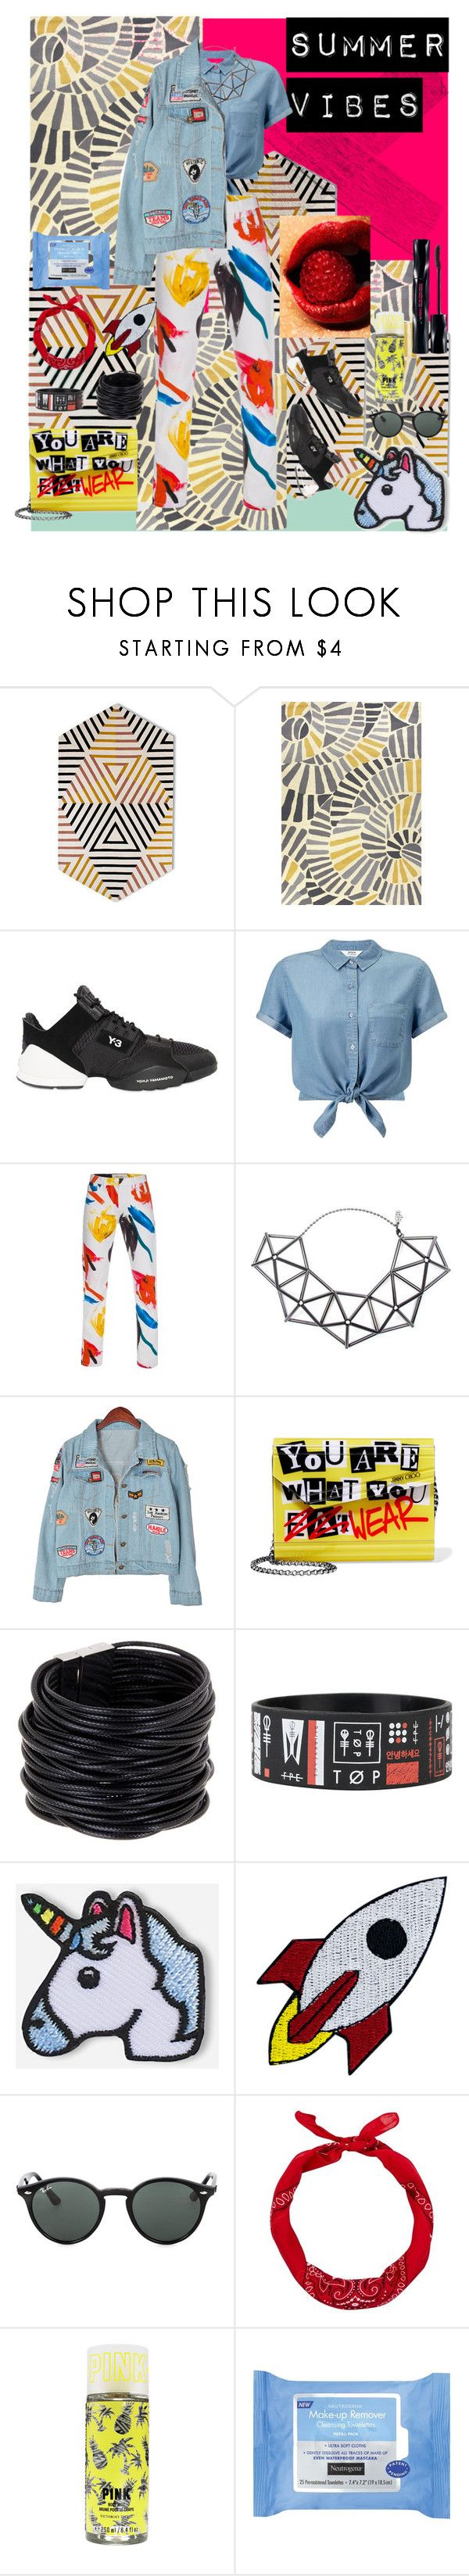 """Summer vibes"" by stapleluc on Polyvore featuring Jaipur Rugs, Y-3, Miss Selfridge, Paul Smith, WXYZ by Laura Wass, Chicnova Fashion, Jimmy Choo, Saachi, Hipstapatch and Ray-Ban"